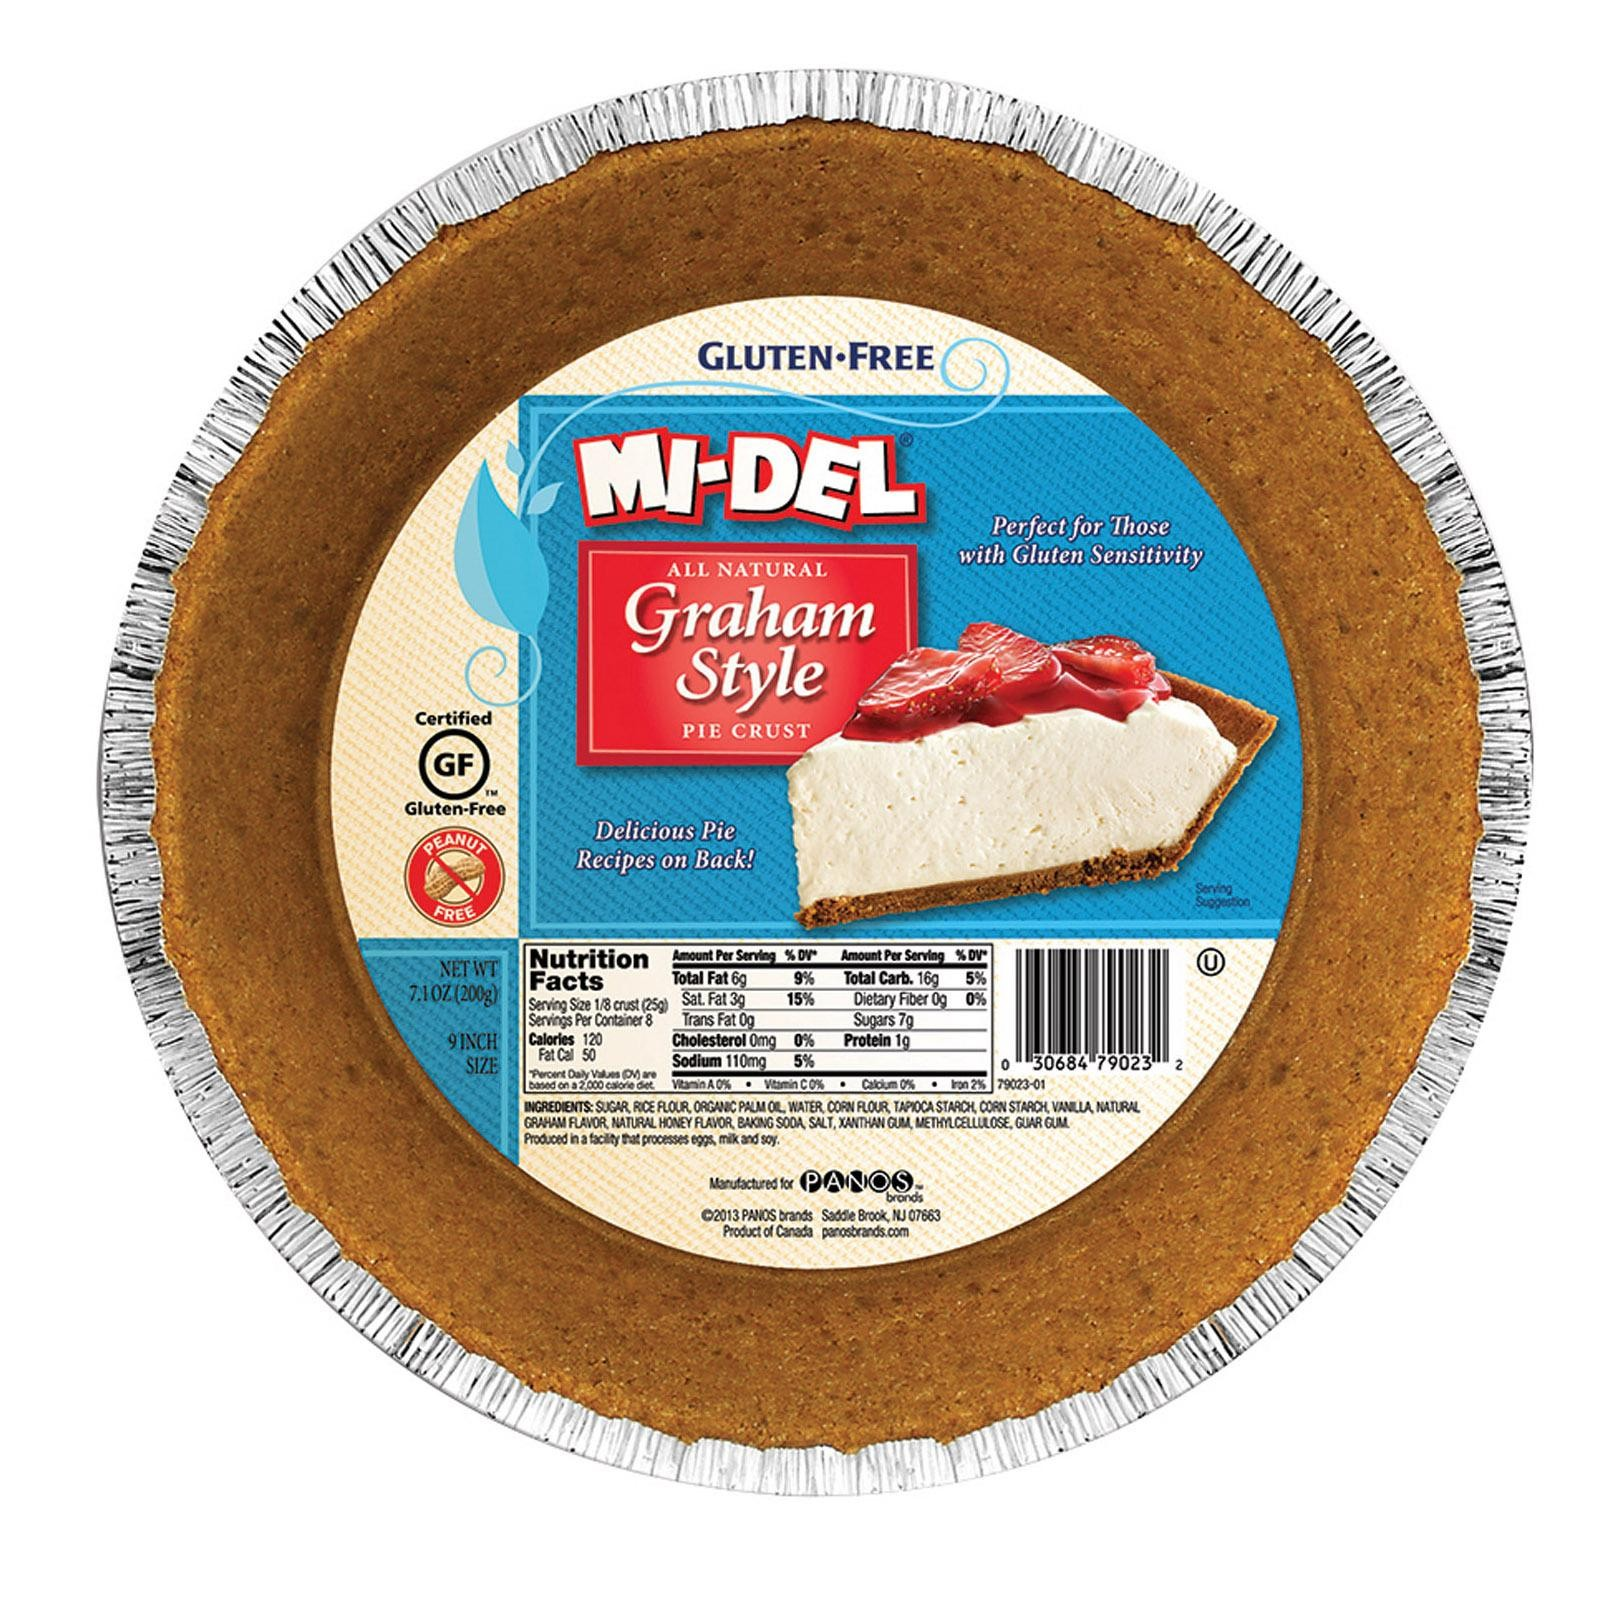 Midel Gluten Free Graham Style Pie Crust - pack of 12 - 7.1 Oz.